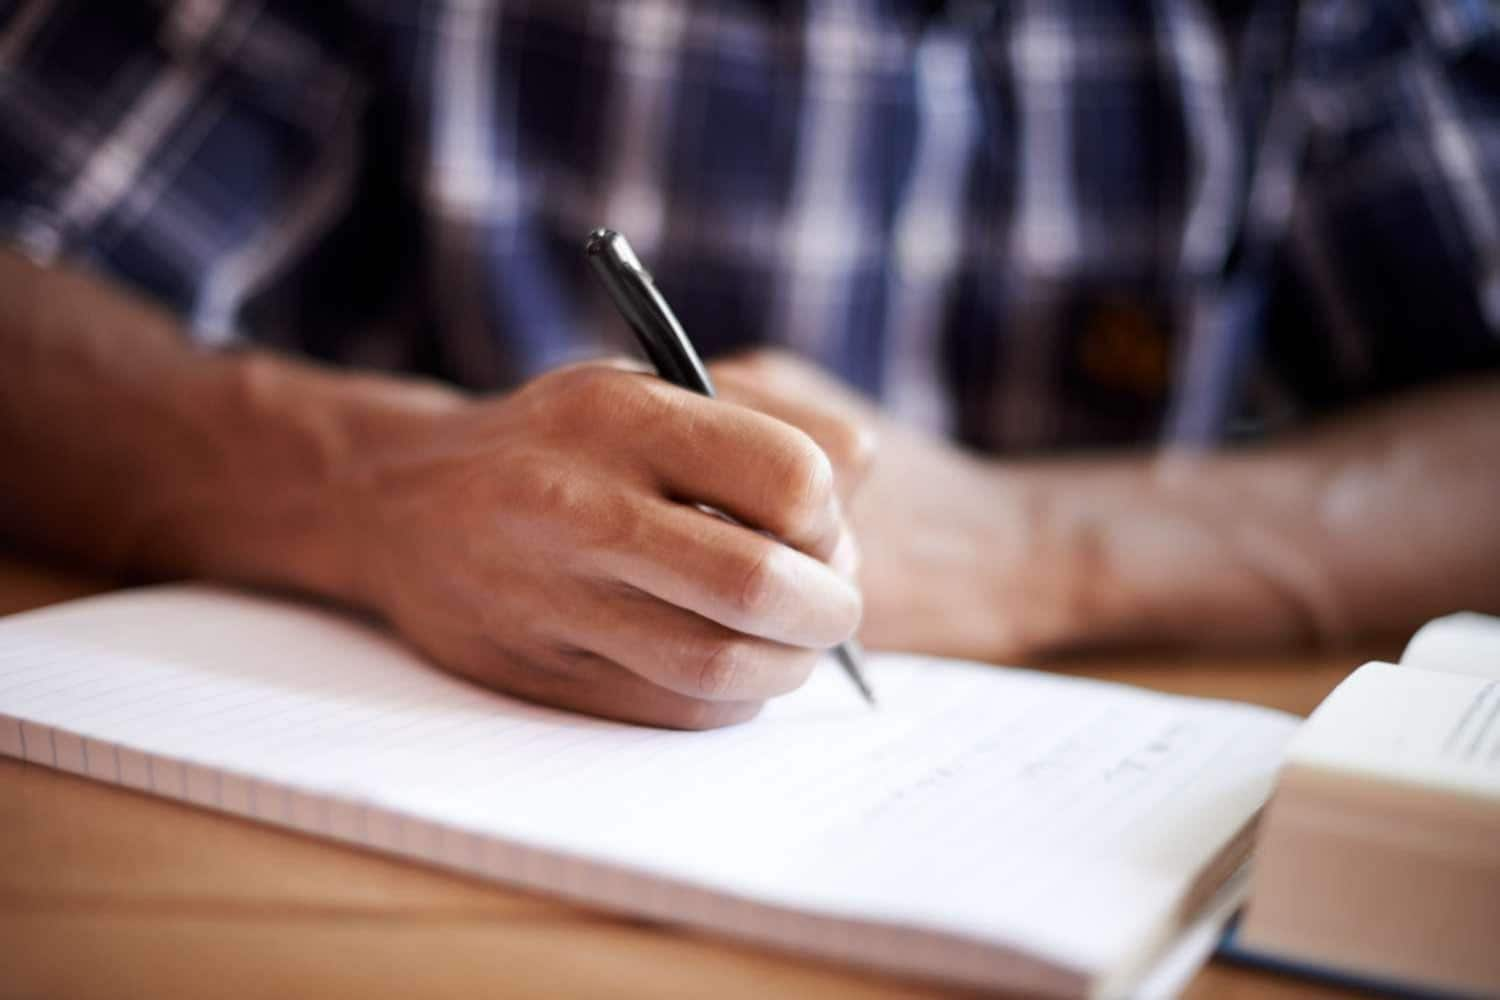 Man writing on paper